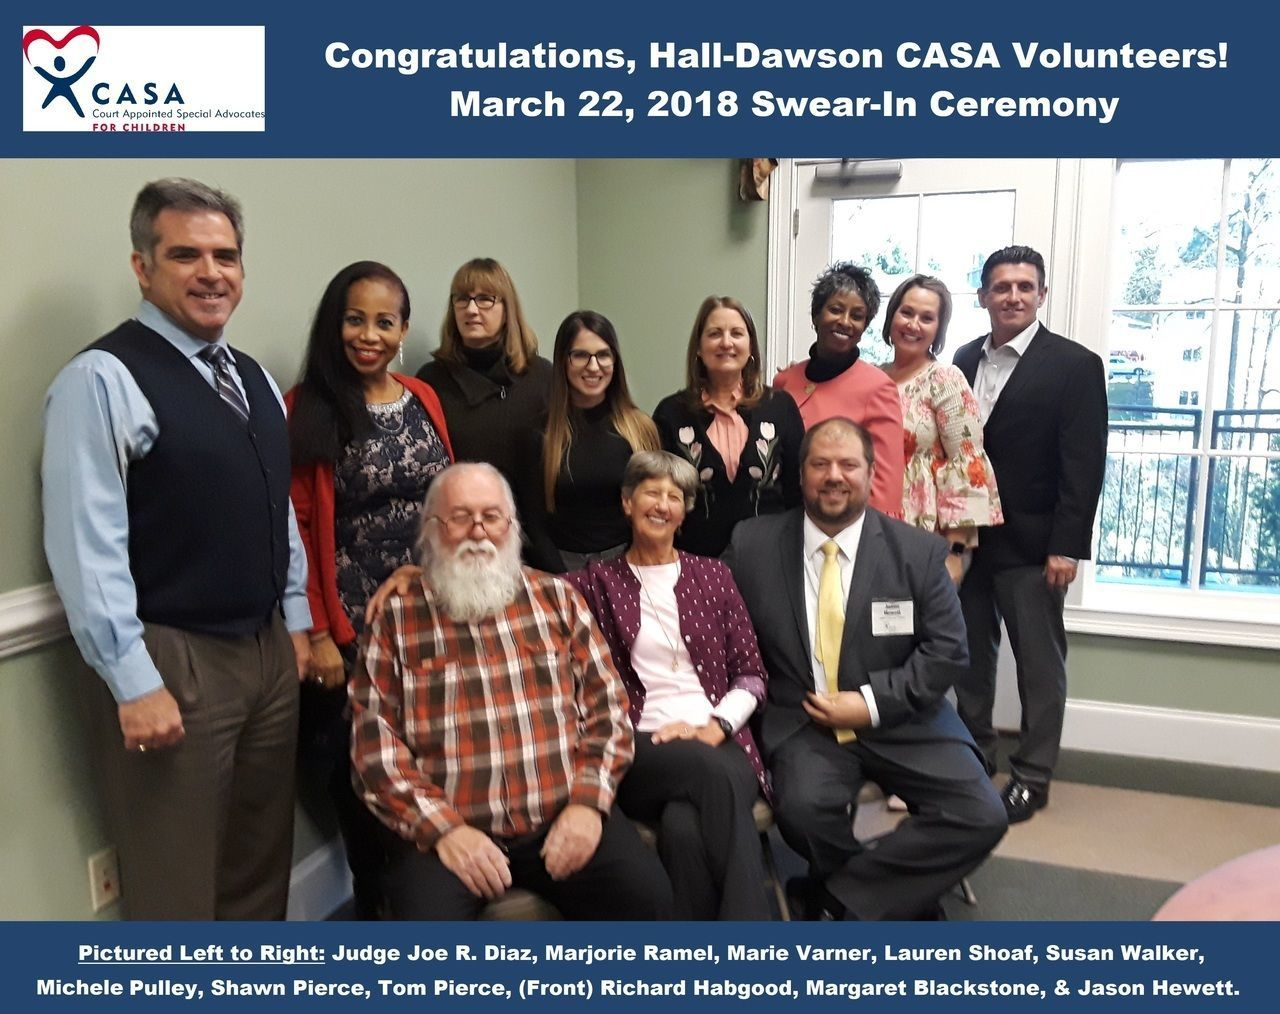 We are saddened to share with you the passing of CASA Volunteer Richard Habgood.